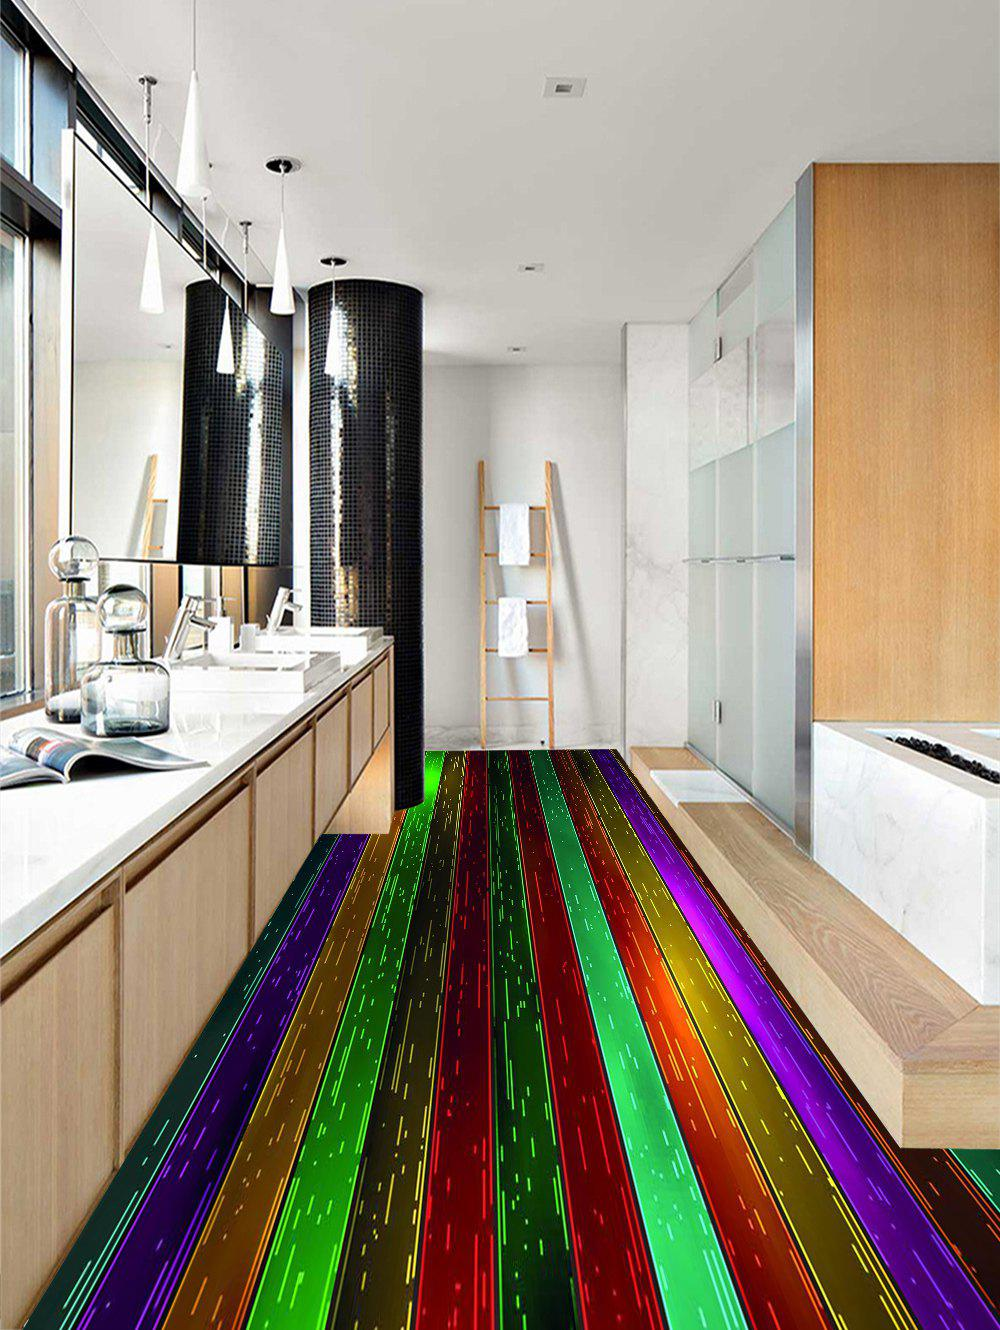 Shinny Colorful Wood Grain Print Floor Decals - multicolor G 3PCS: 20*39 INCH